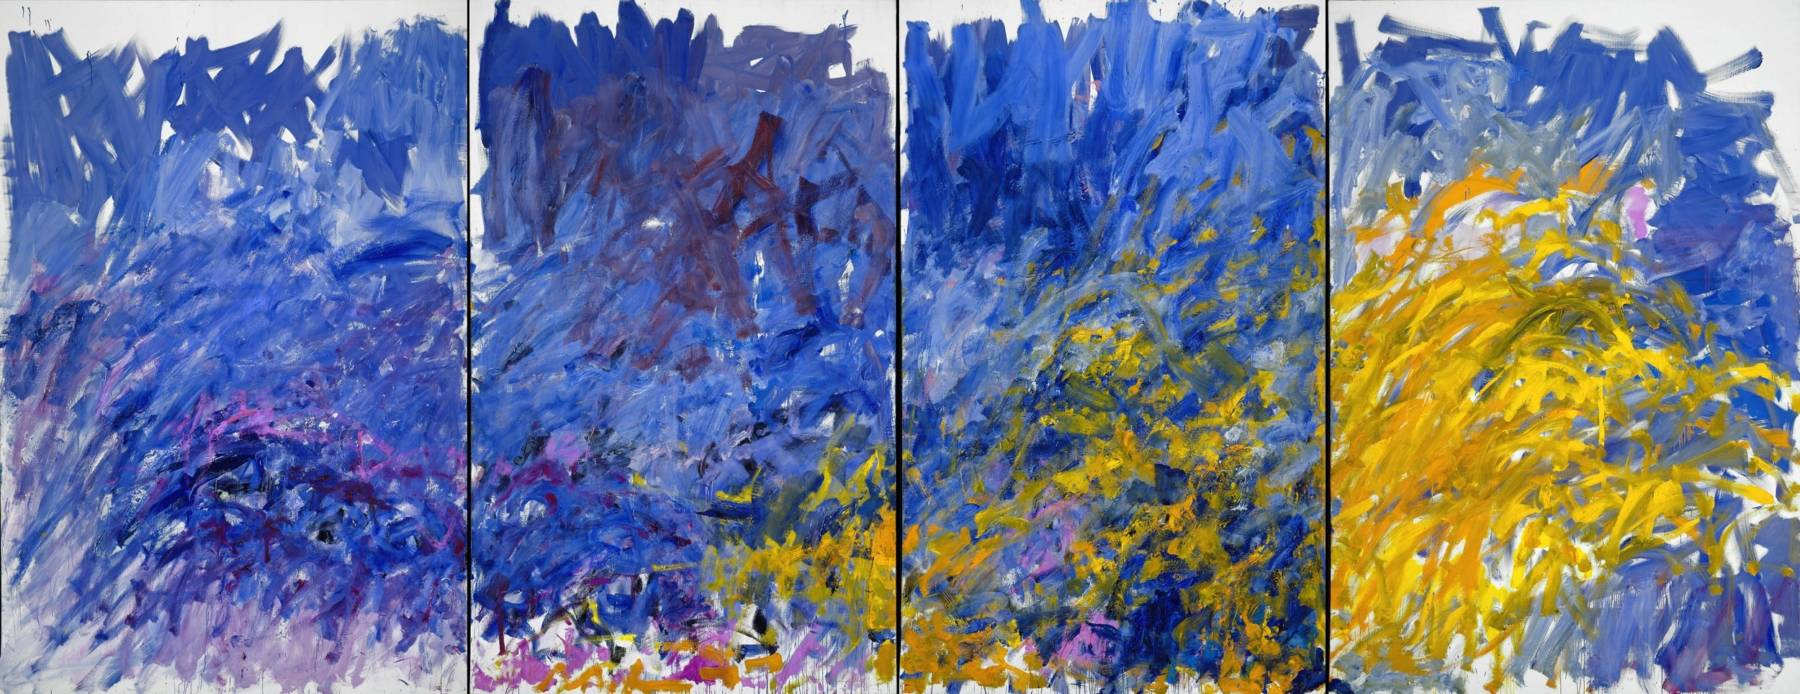 Joan Mitchell, Edrita Fried